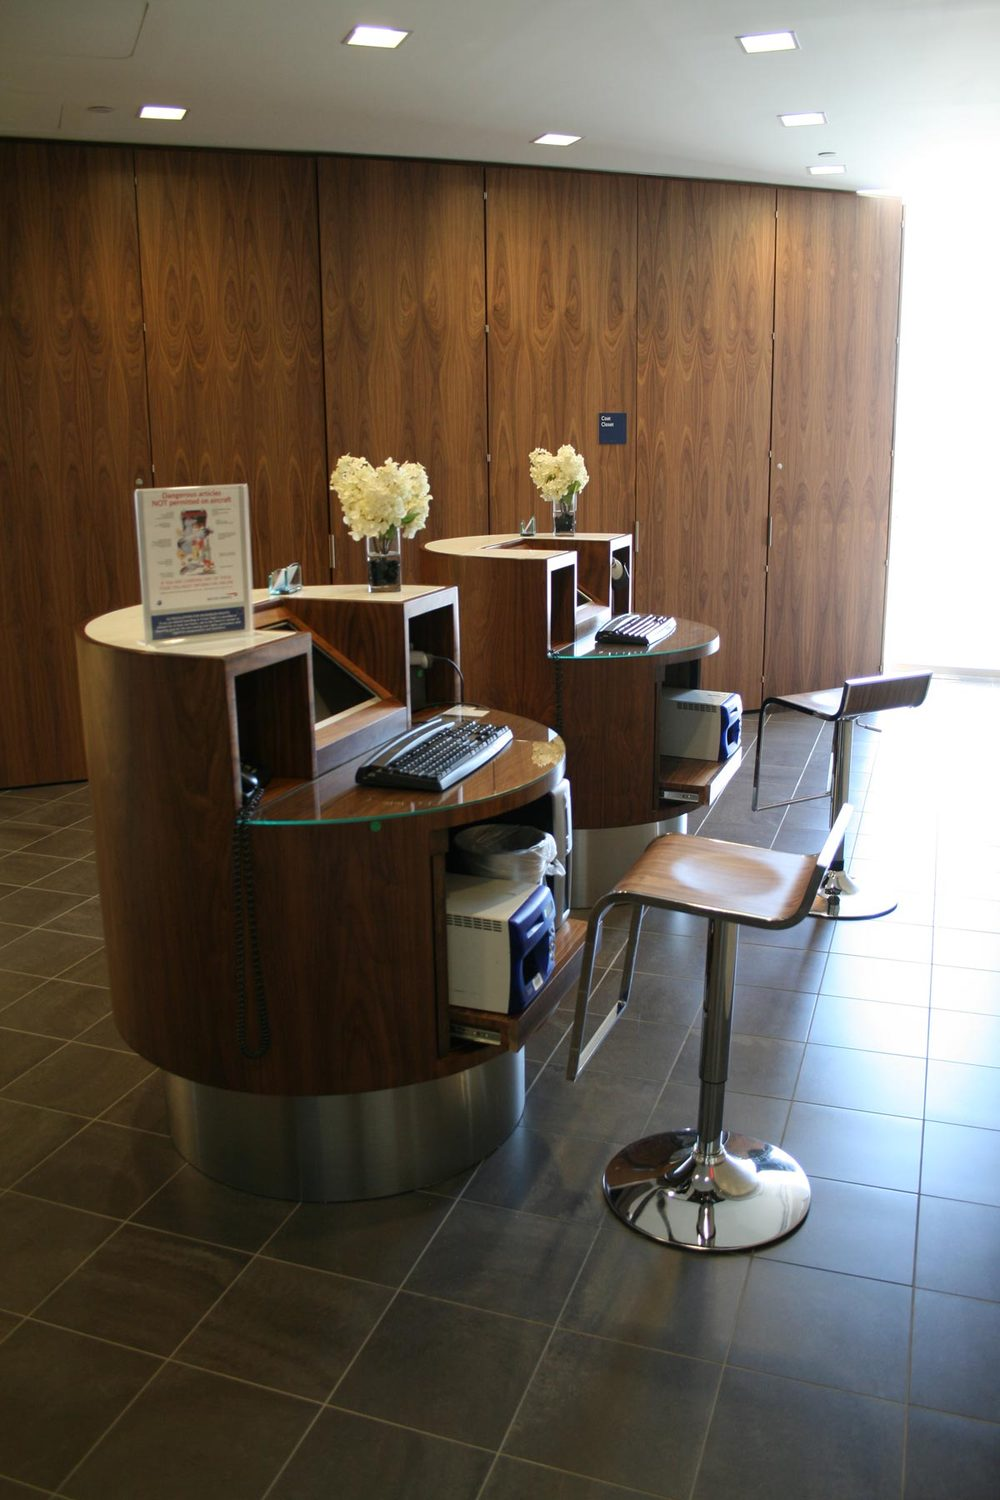 British Airways Galleries Lounge | Newark Int'l